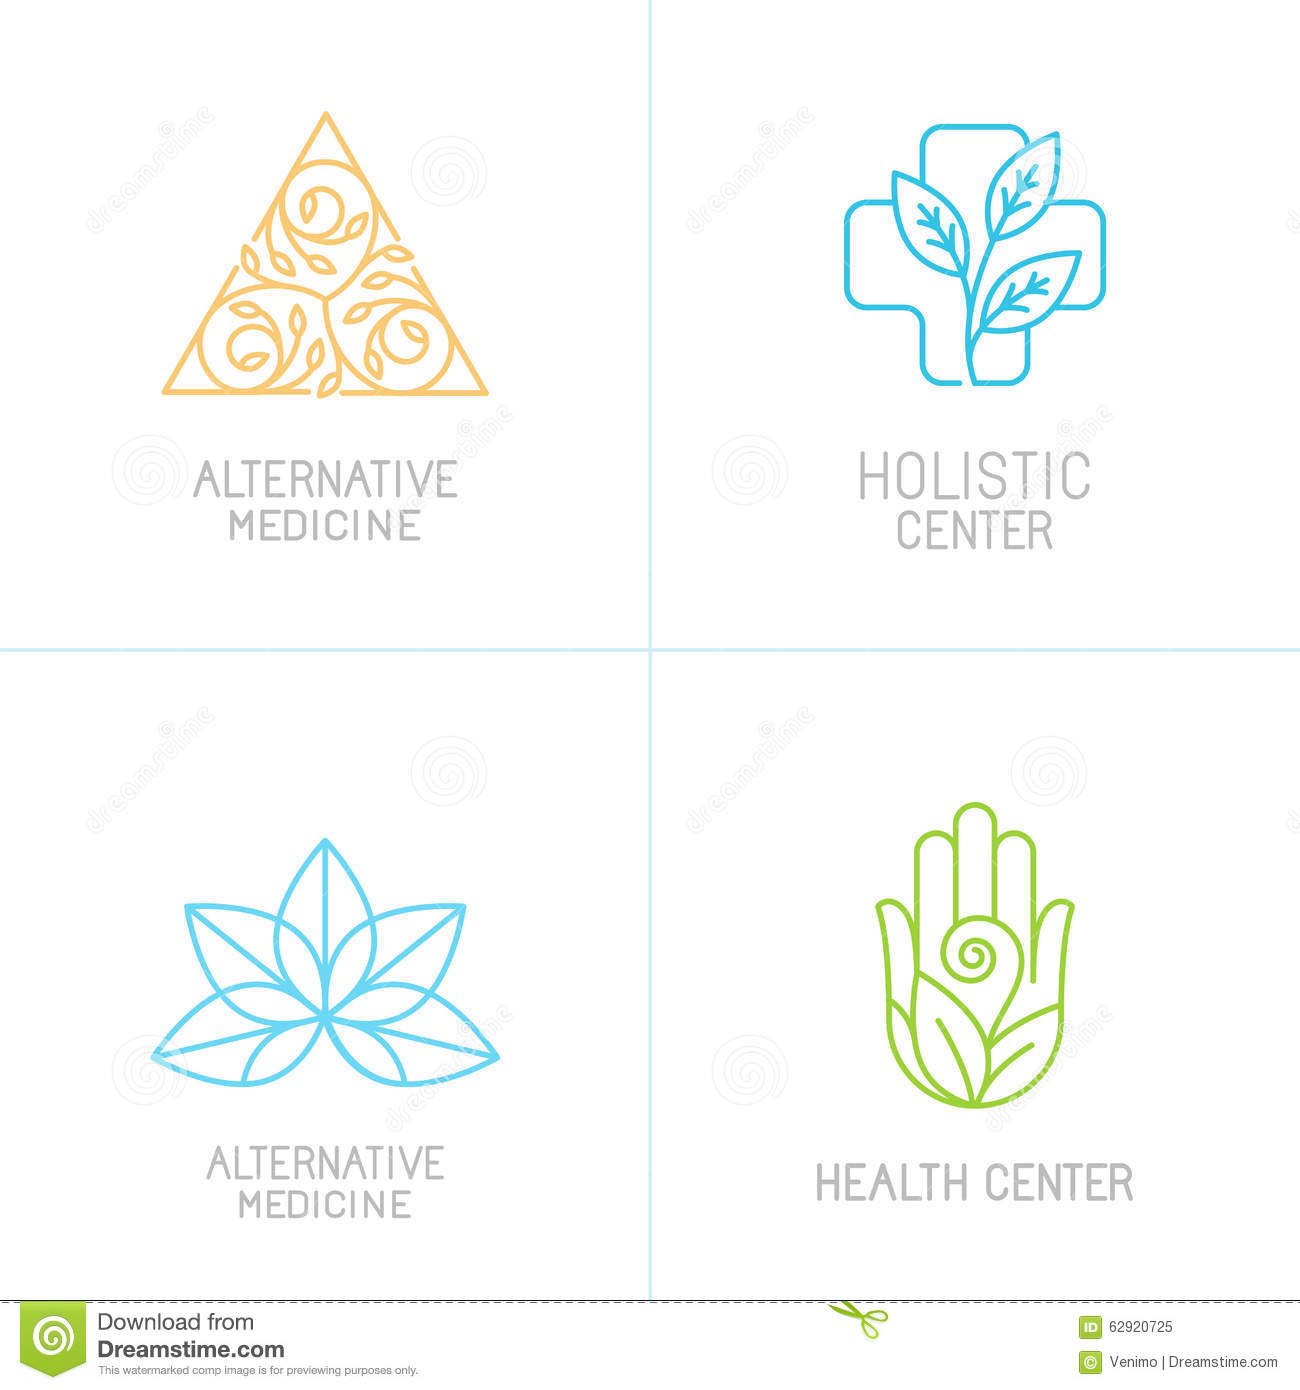 how to become an alternative medicine practitioner